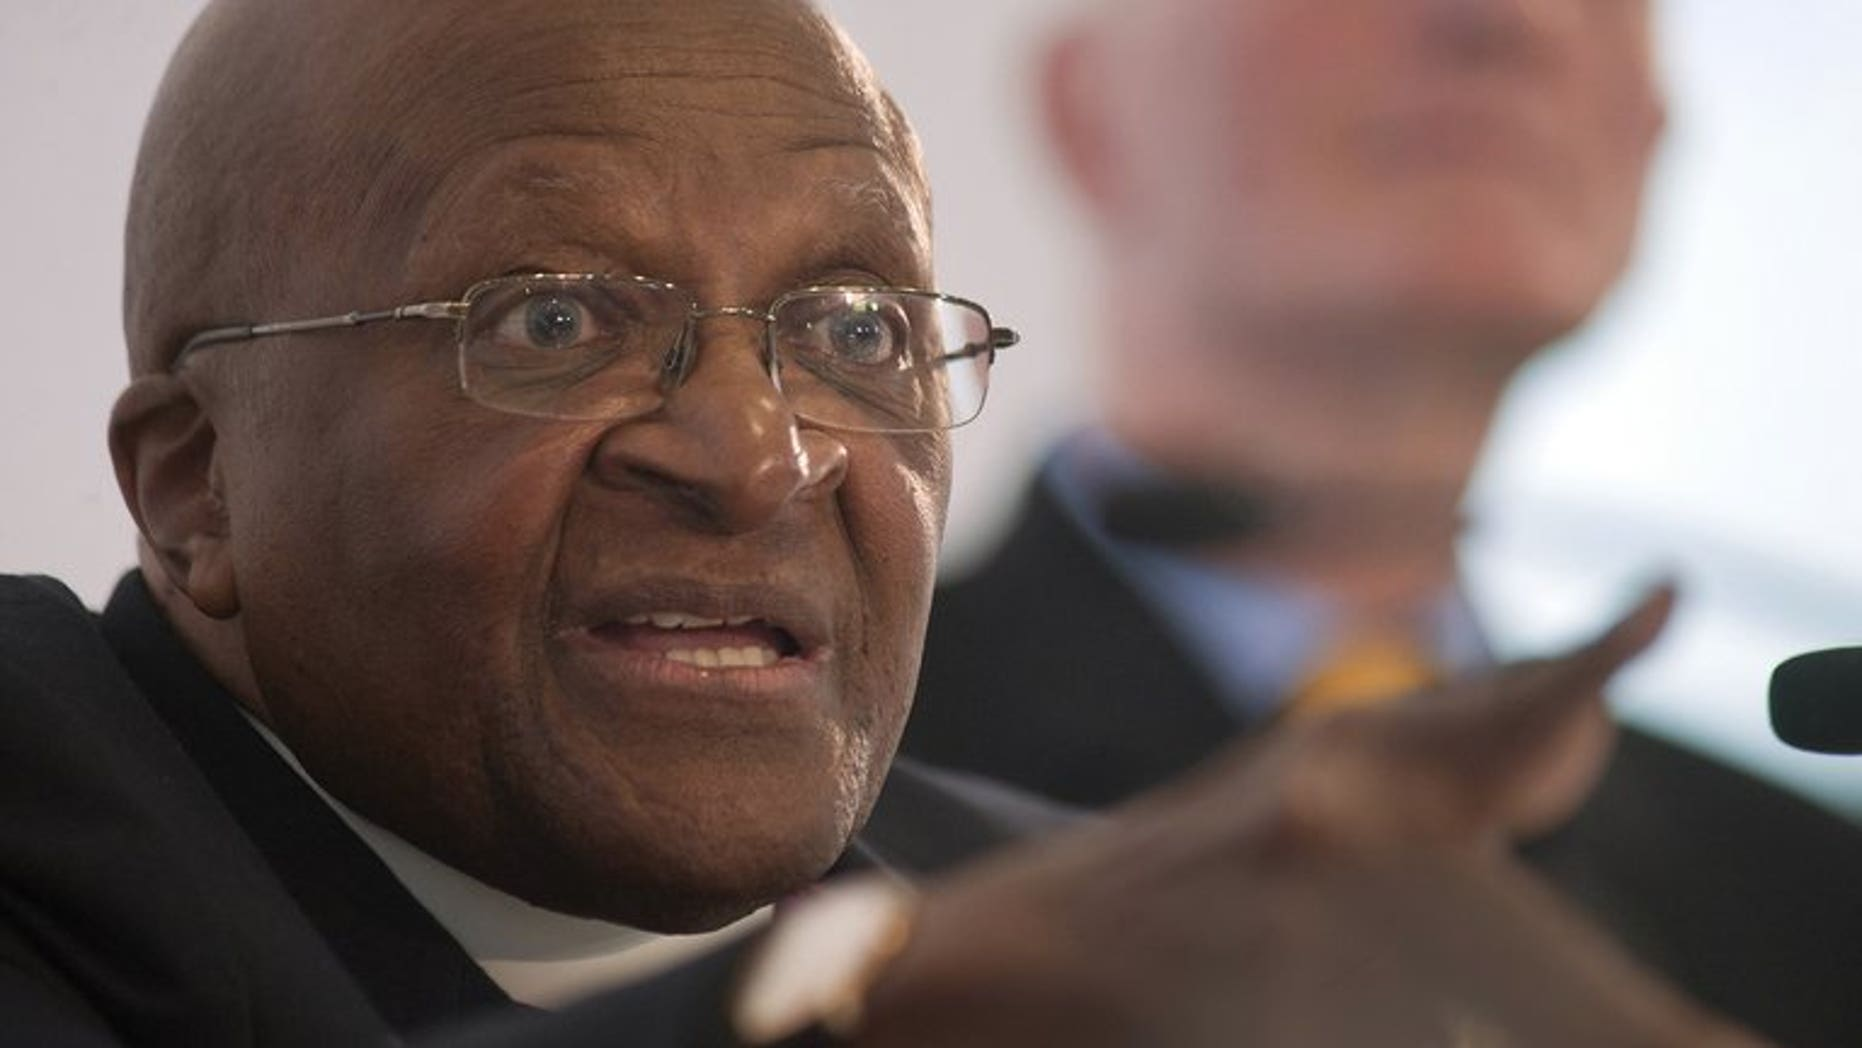 Archbishop Emeritus and Nobel Peace Laureate Desmond Tutu speaks at the launch of Free and Equal, a UN campaign for lesbian, gay, bisexual and transgender (LGBT) equality, on July 26, 2013 in Cape Town.